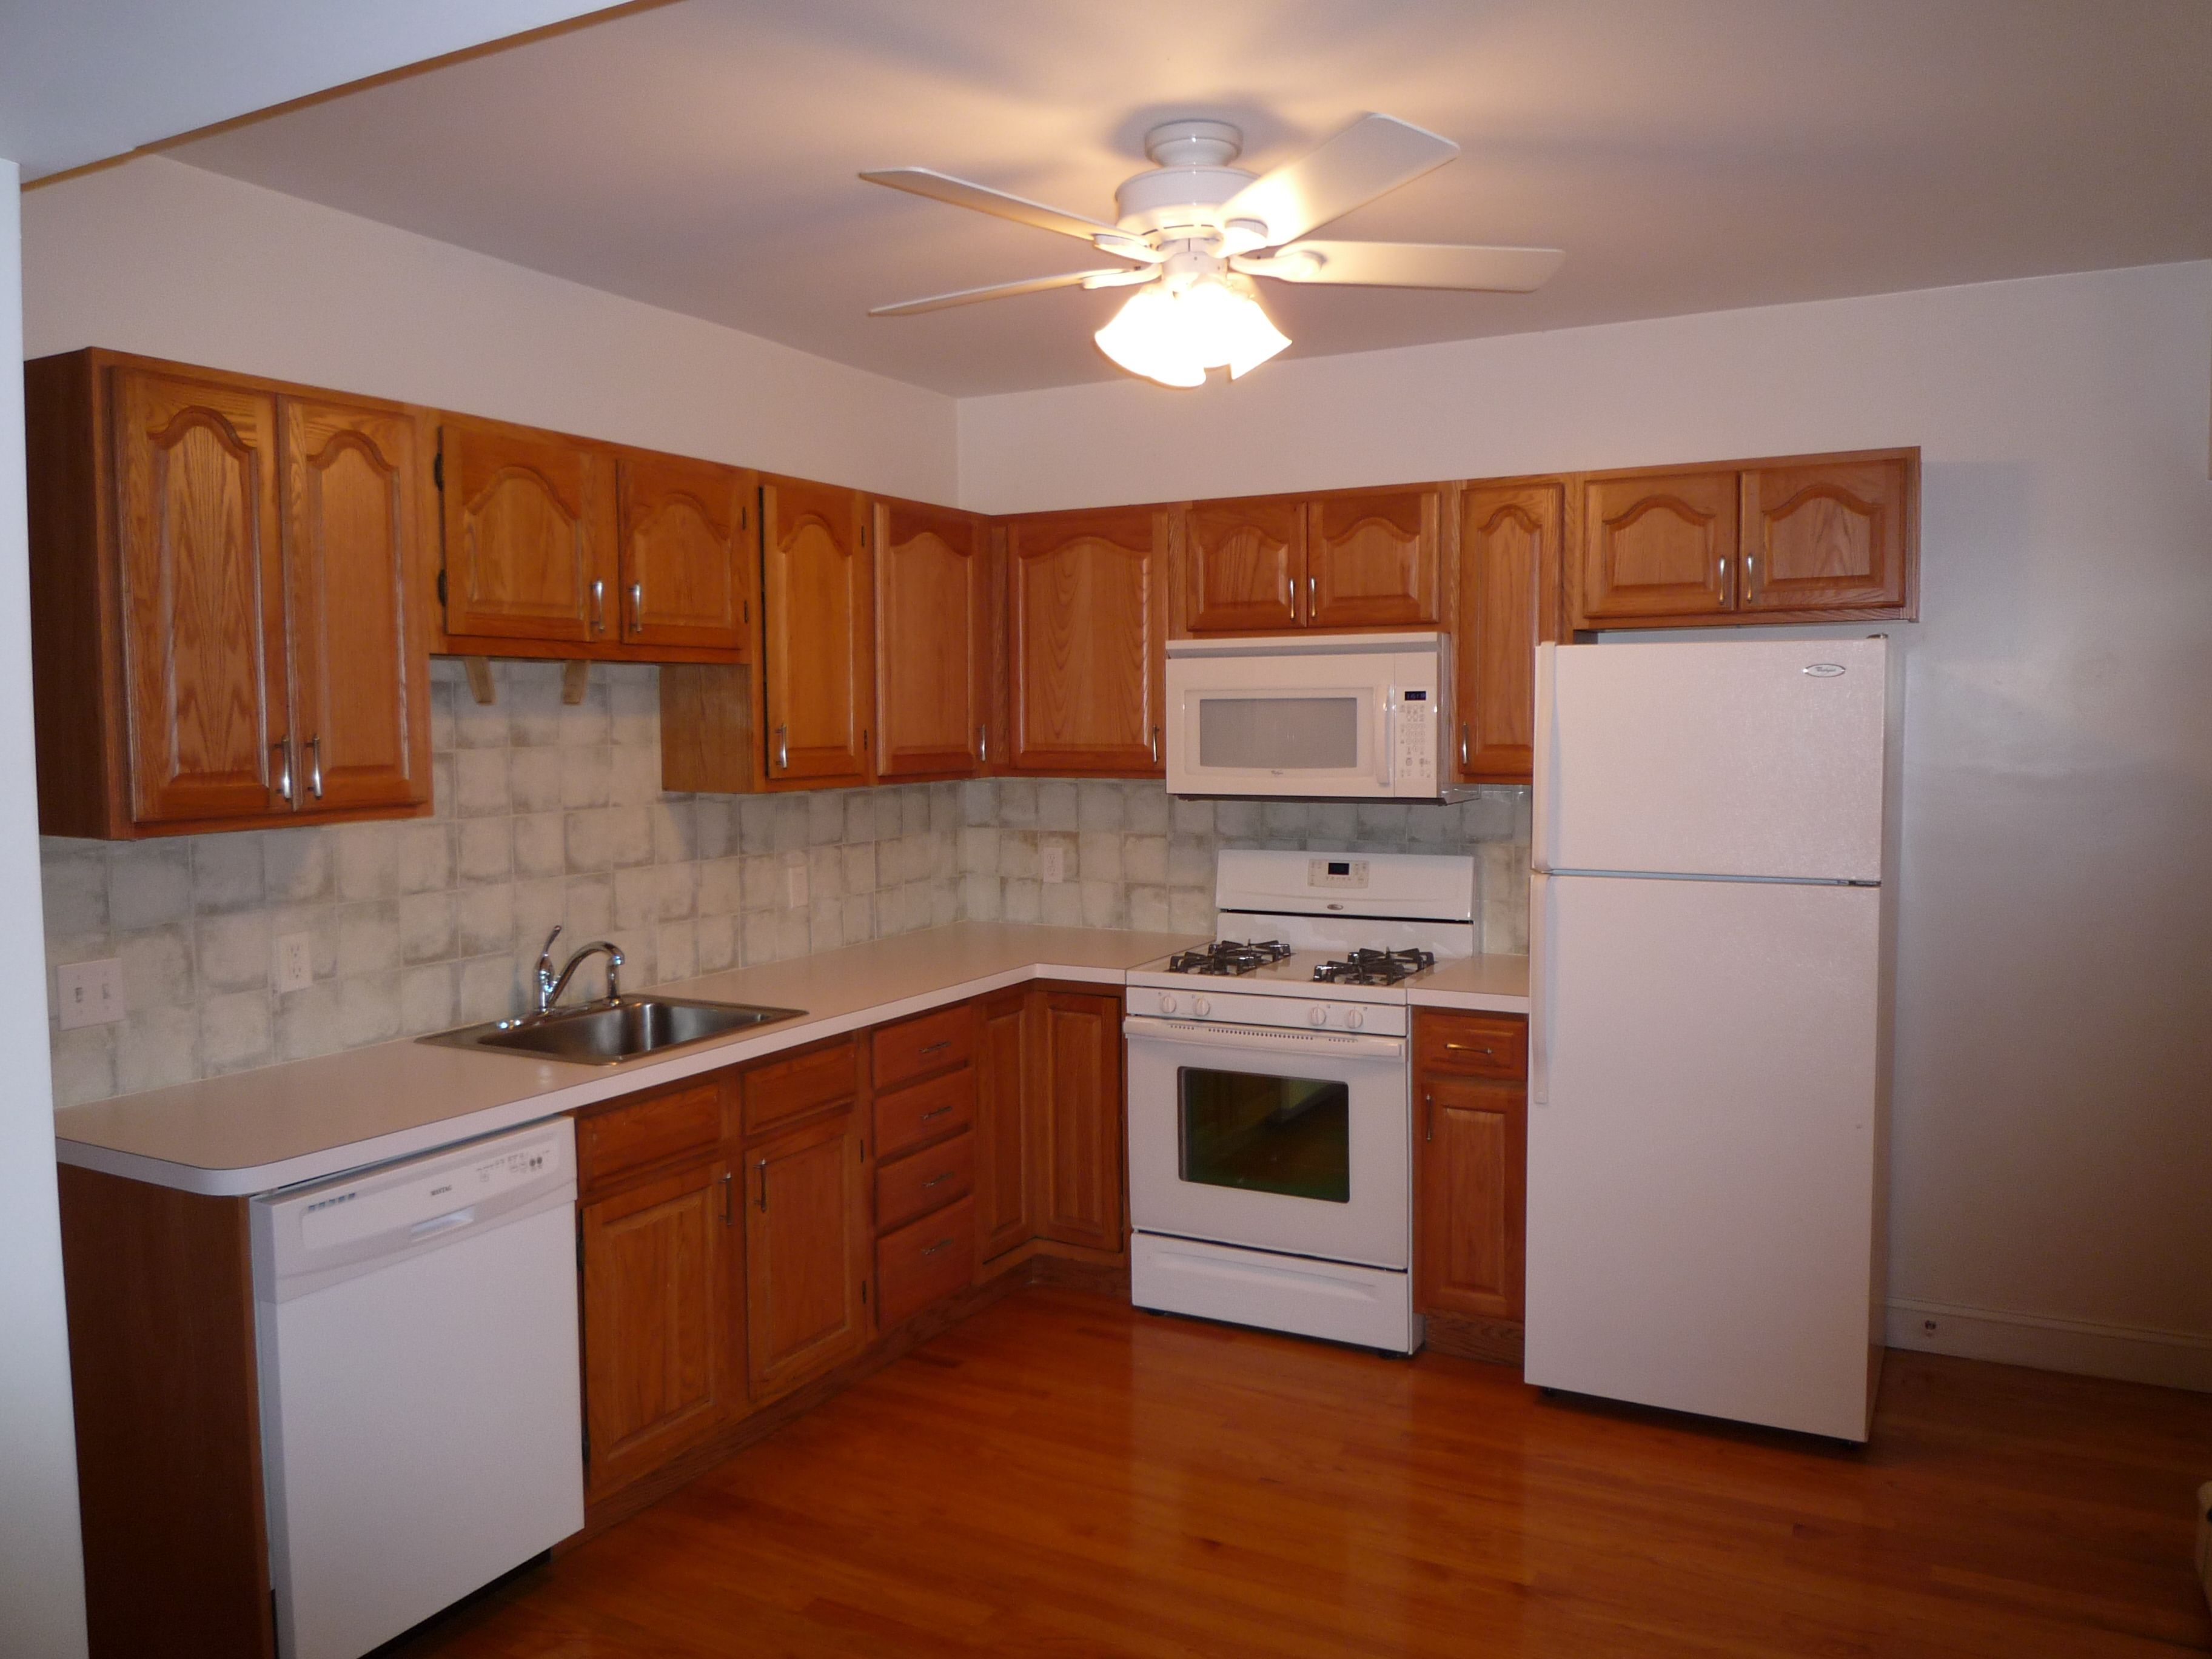 L Shaped Kitchen Designs With Wall Oven Ravishing  L Shaped Kitchen Designs With Wall Oven Backyard Set Kitchen Design